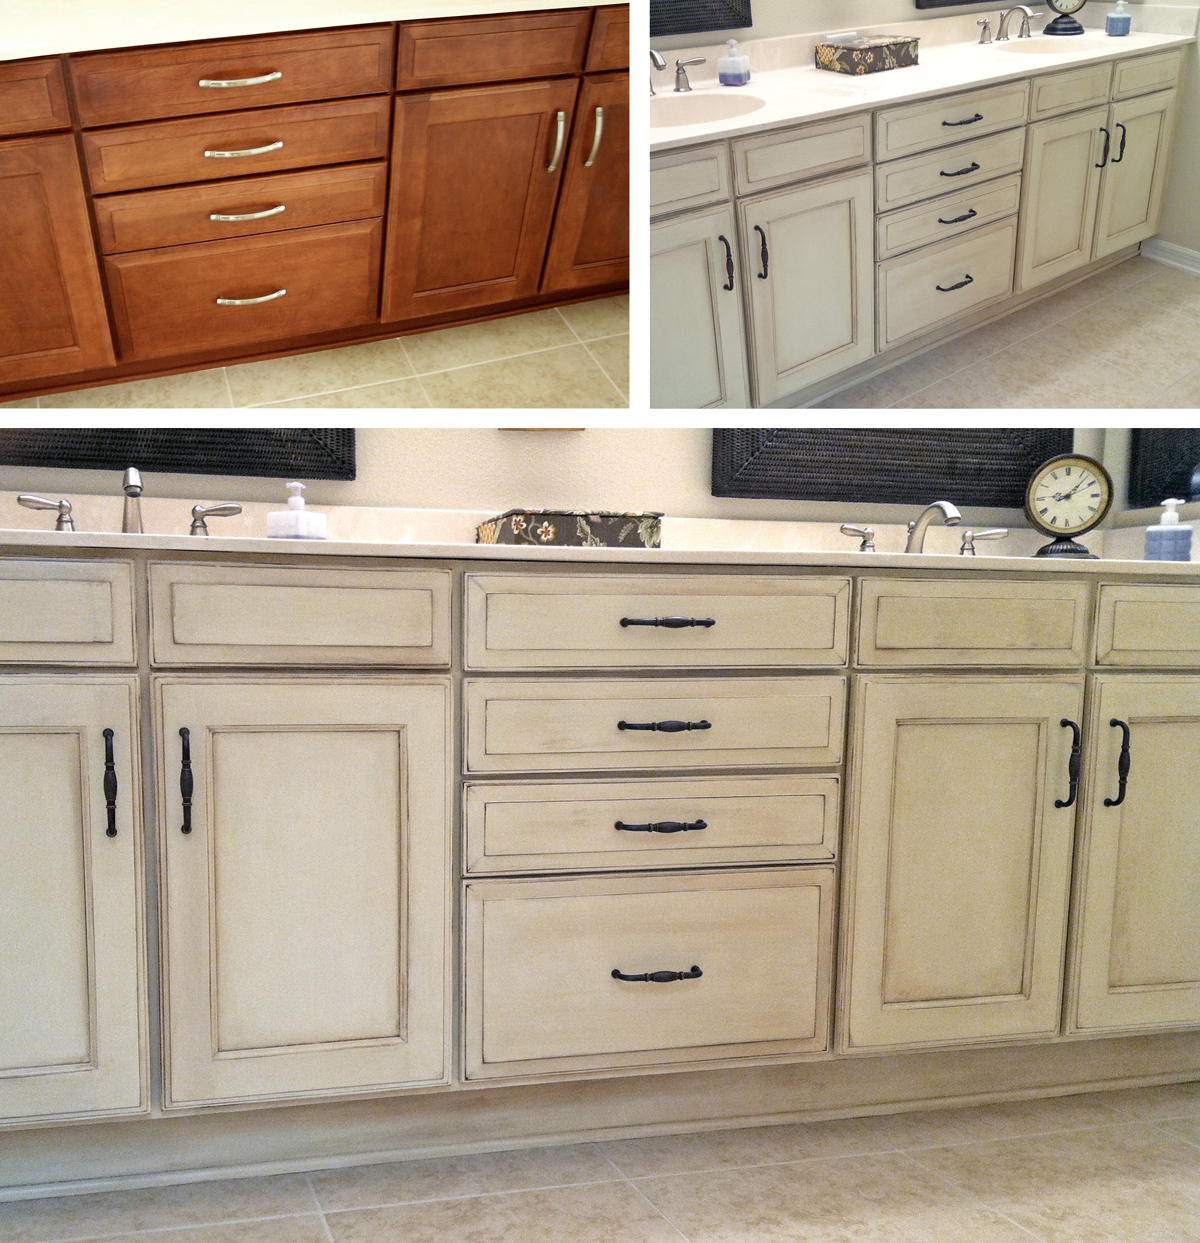 Chalk Paint Kitchen Cabinets Update The Diy In 2020 Chalk Paint Kitchen Cabinets Chalk Paint Kitchen Painting Cabinets